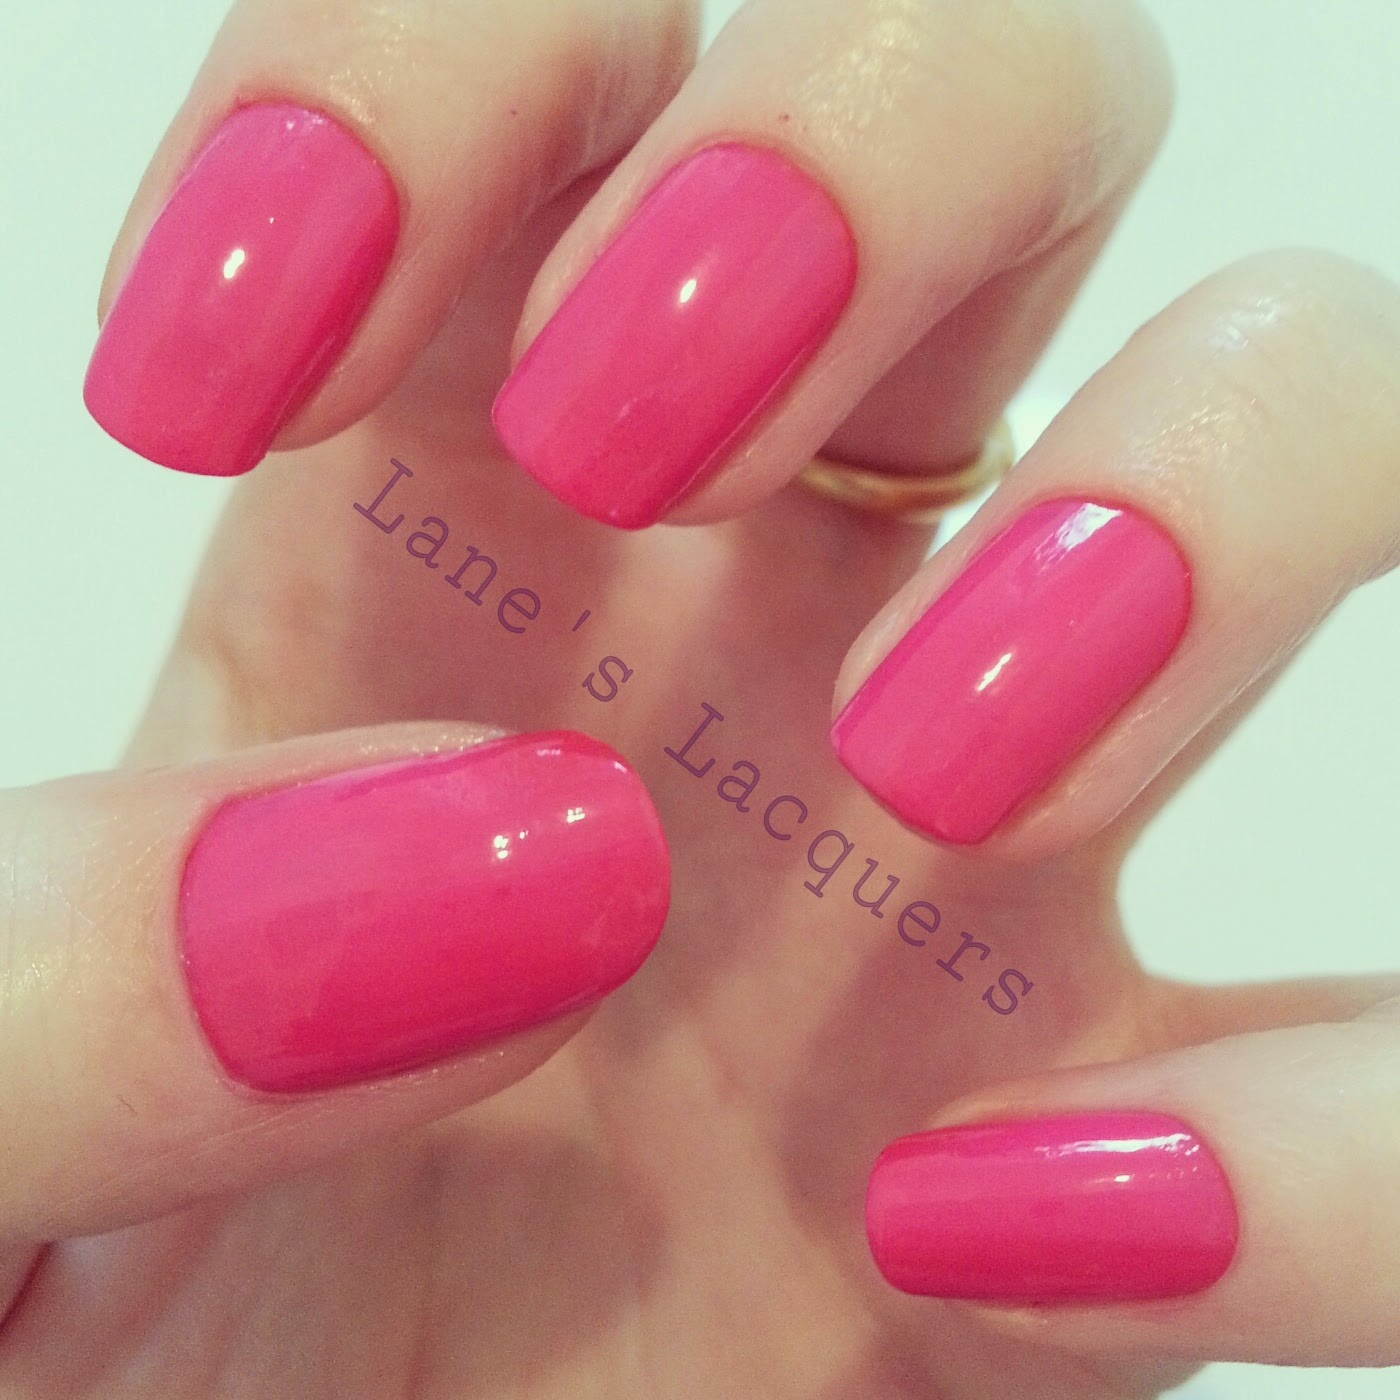 barry-m-summer-gelly-pink-punch-swatch-manicure